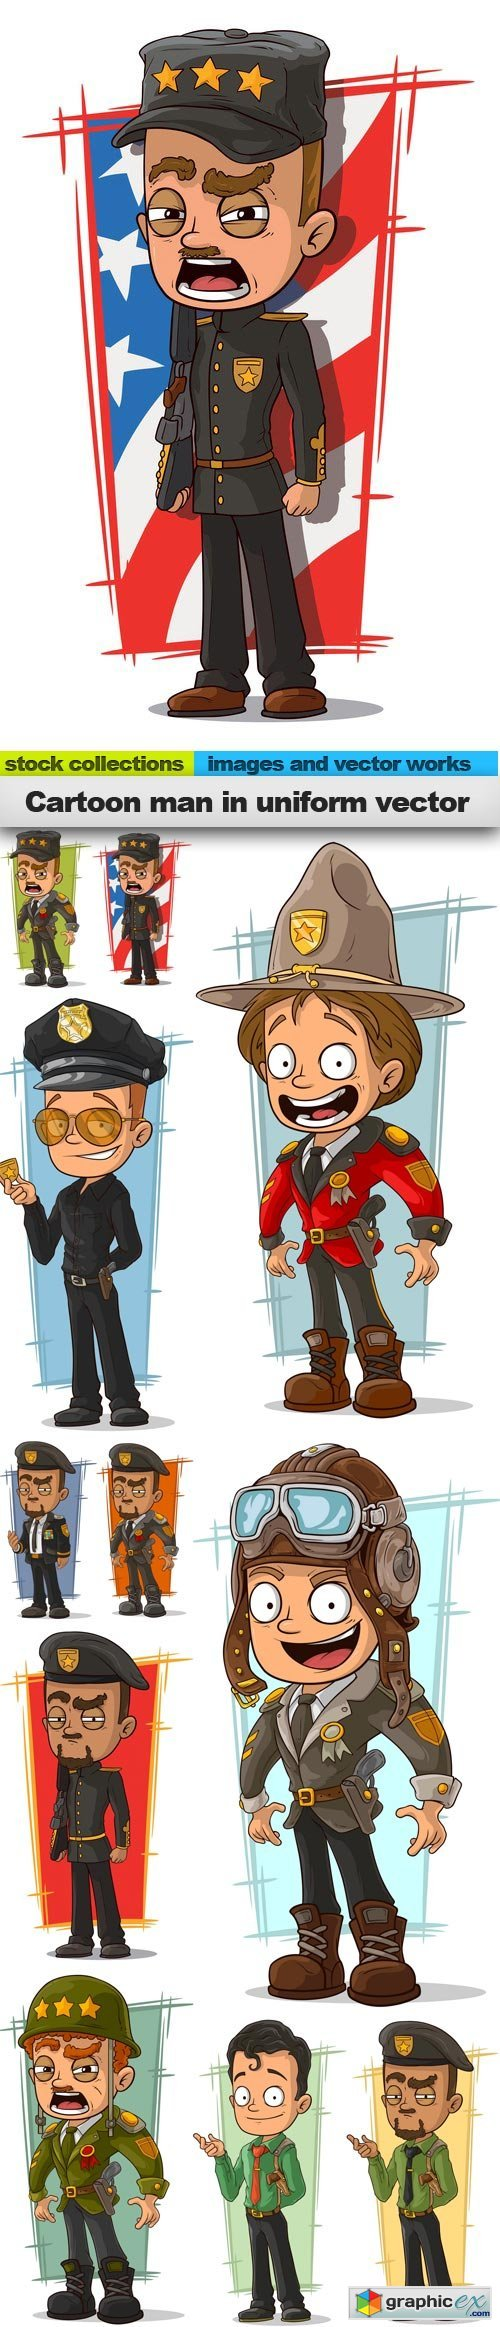 Cartoon man in uniform vector, 11 x EPS